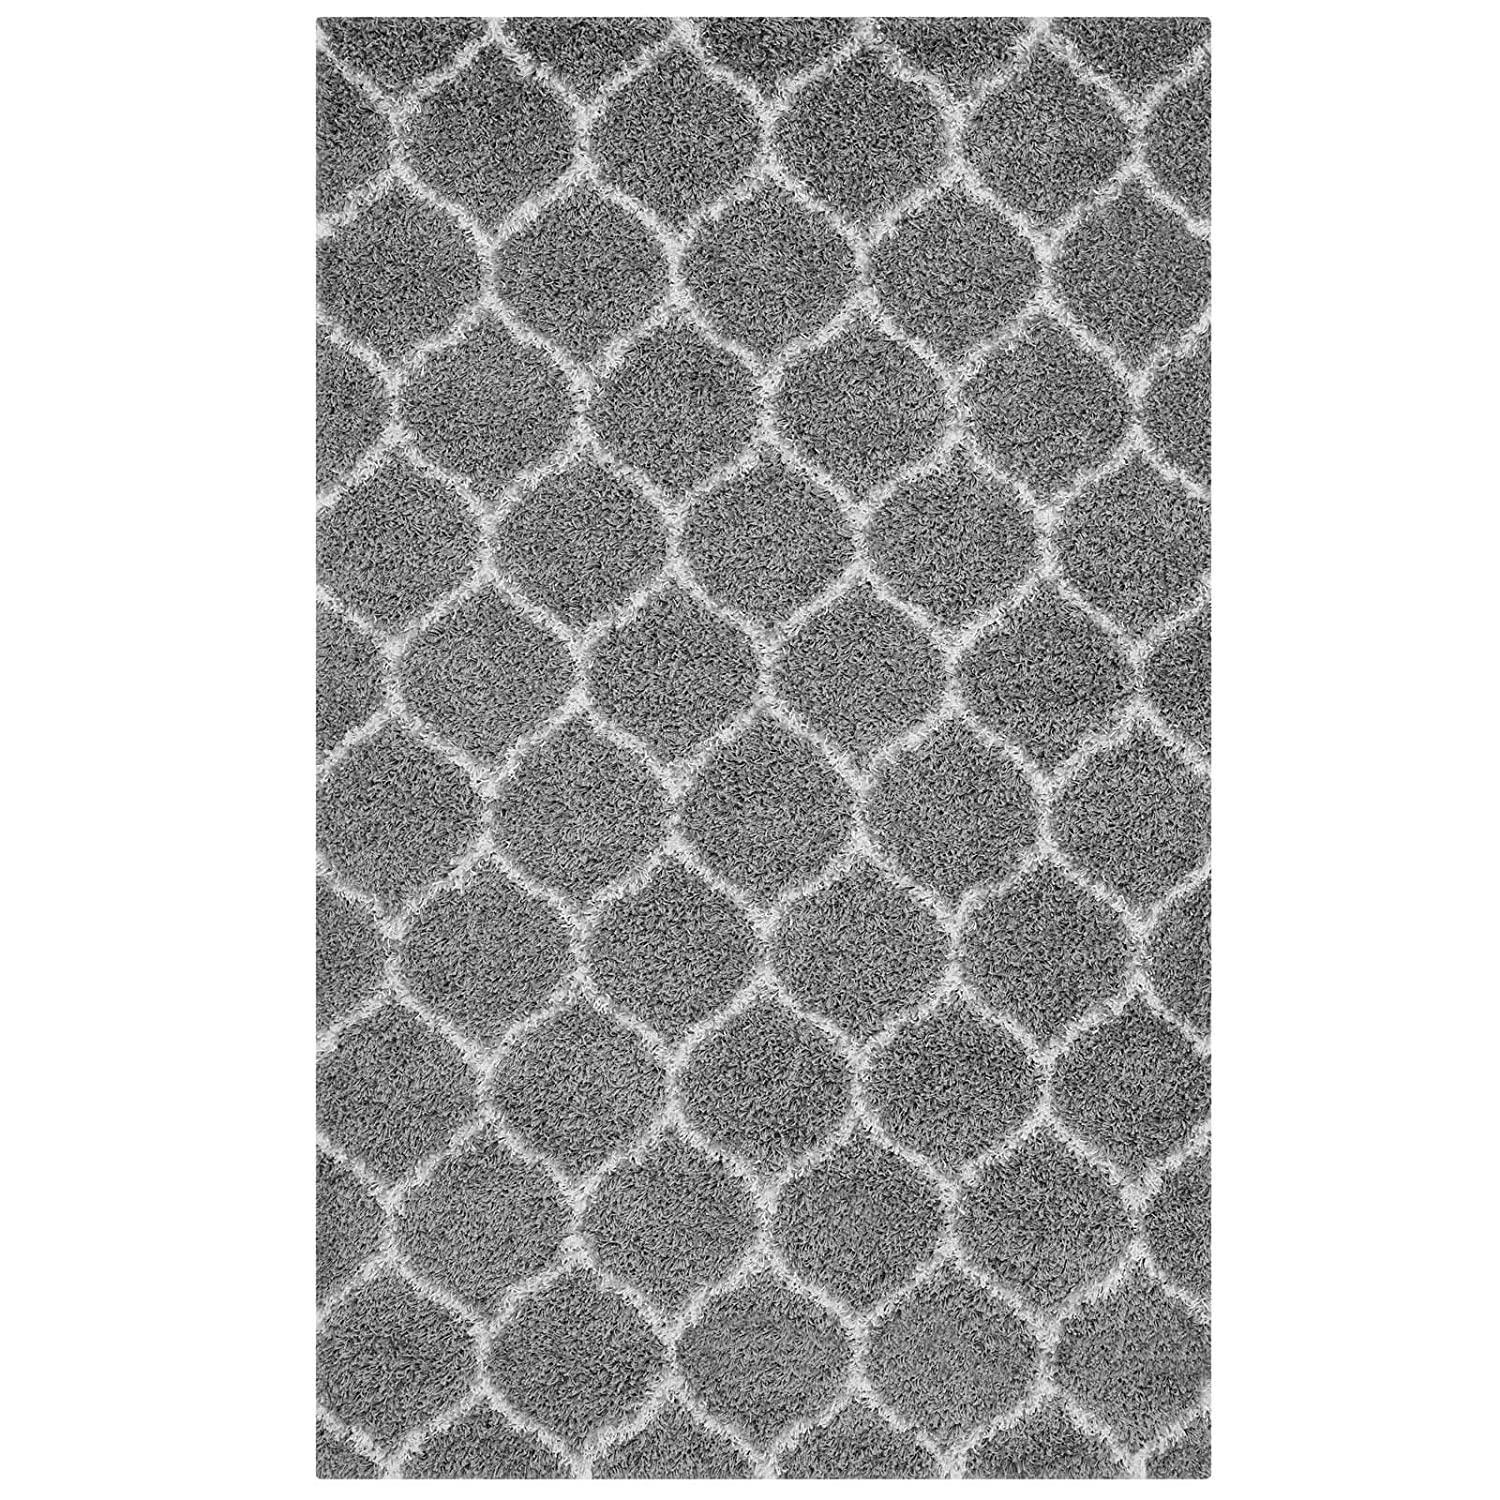 Modway Solvea Moroccan Trellis 8x10 High Pile Shag Area Rug With Lattice Design In Ivory and Navy